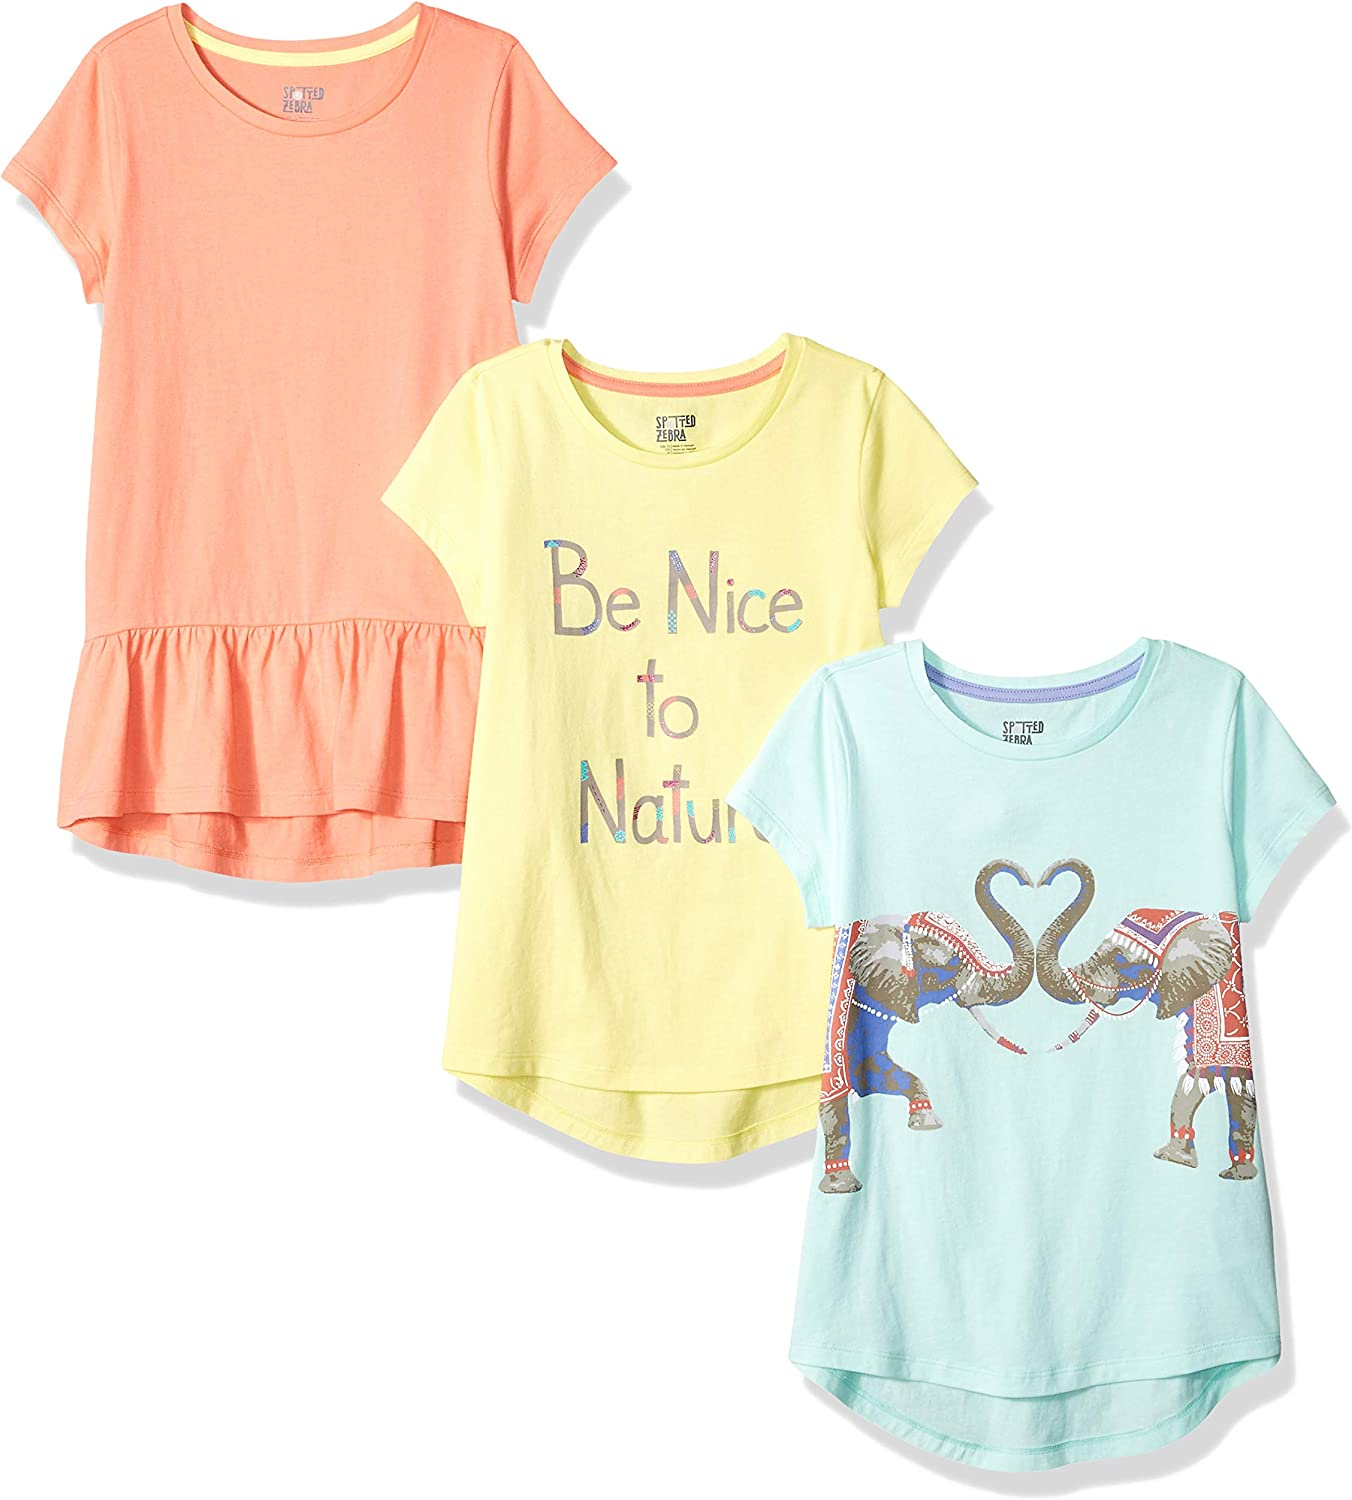 Girls Top Tunic T Shirt Yellow Super Star Short Sleeve Tee Kids 4 5 6 6X New Tag